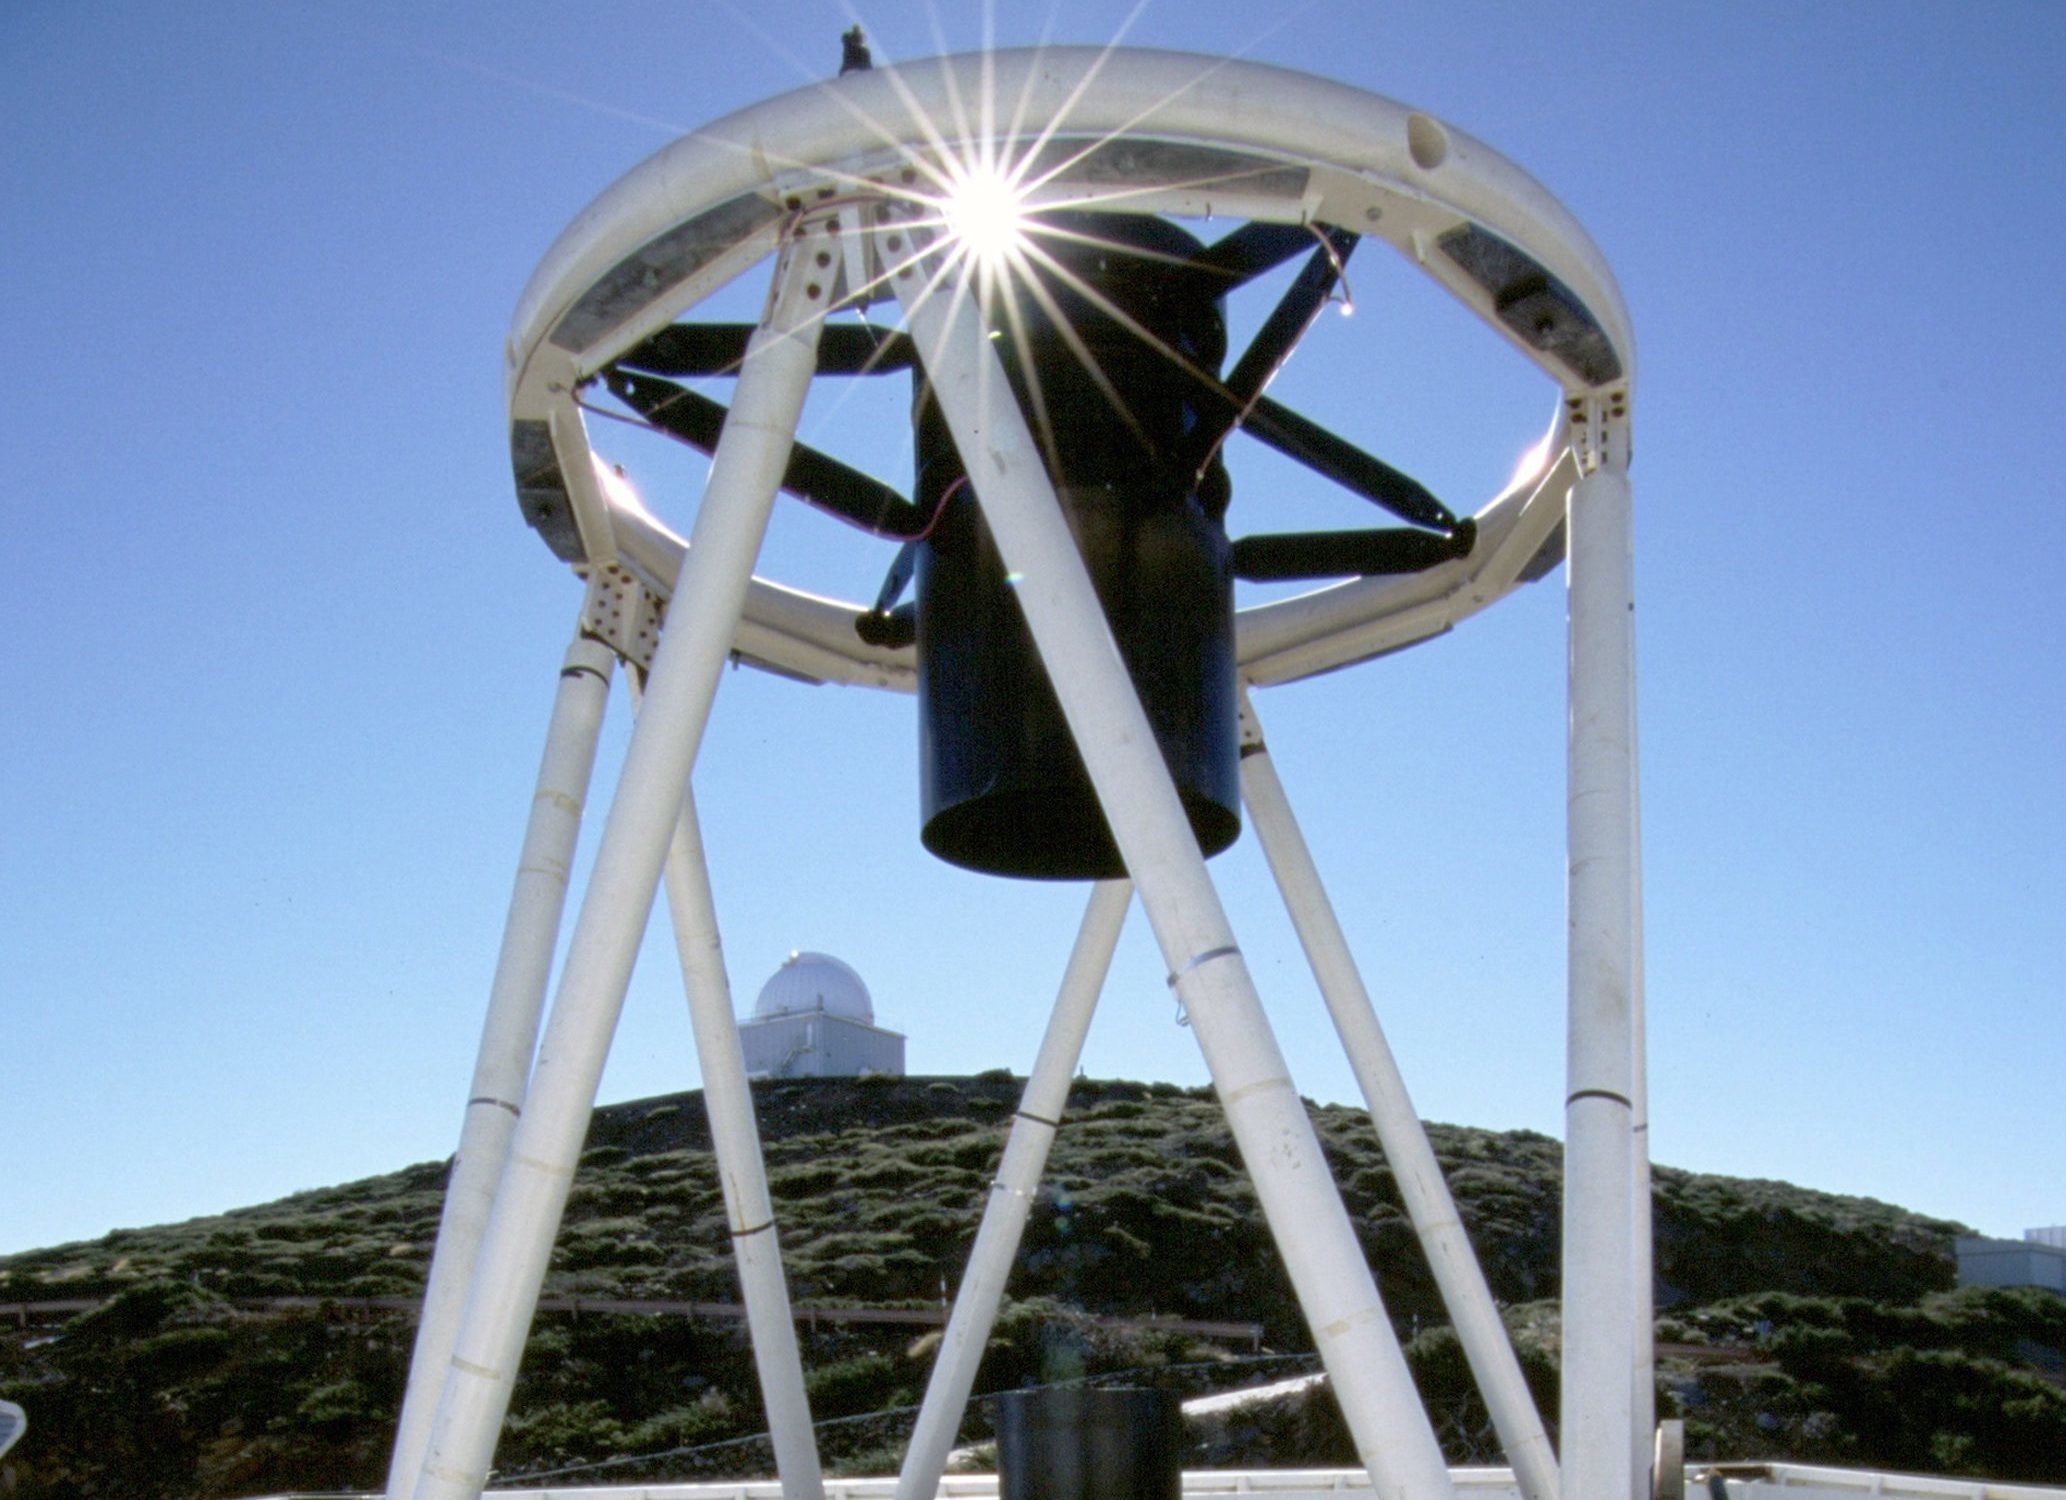 The Liverpool John Moores University (LJMU) robotic telescope which played a major role in the discovery of no less than seven Earth-sized worlds orbiting a cool dwarf star known as TRAPPIST-1. (LJMU/PA Wire)